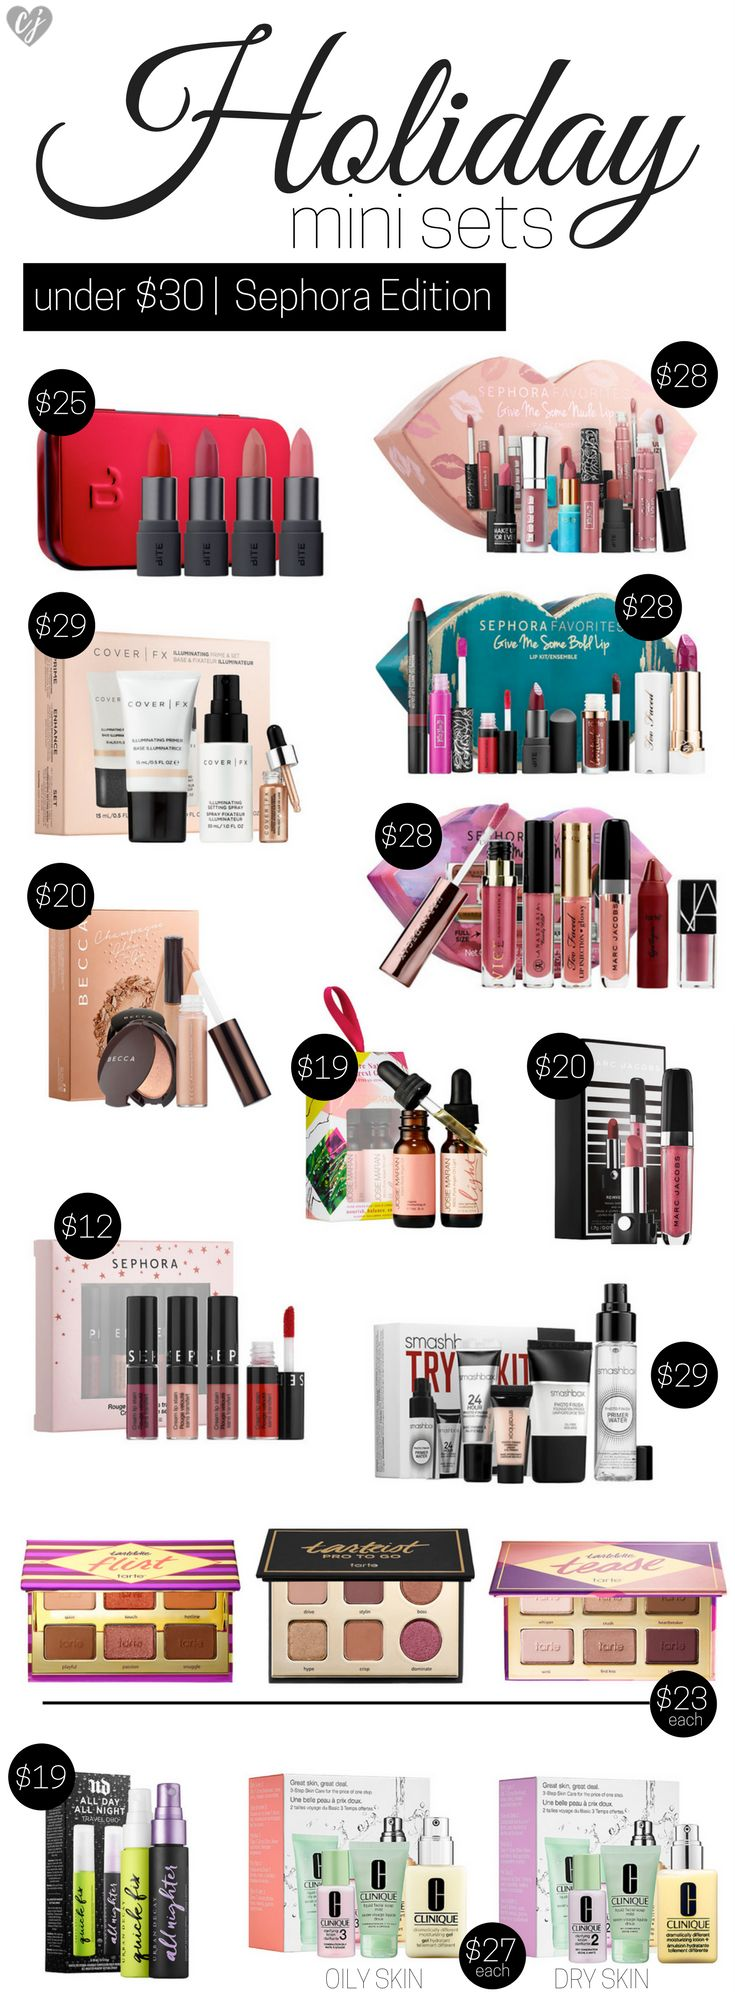 Brands are wowing us with all the best gifts sets for the holidays. Check out this guide for the best mini sets to purchase at Ulta & Sephora all under $30.